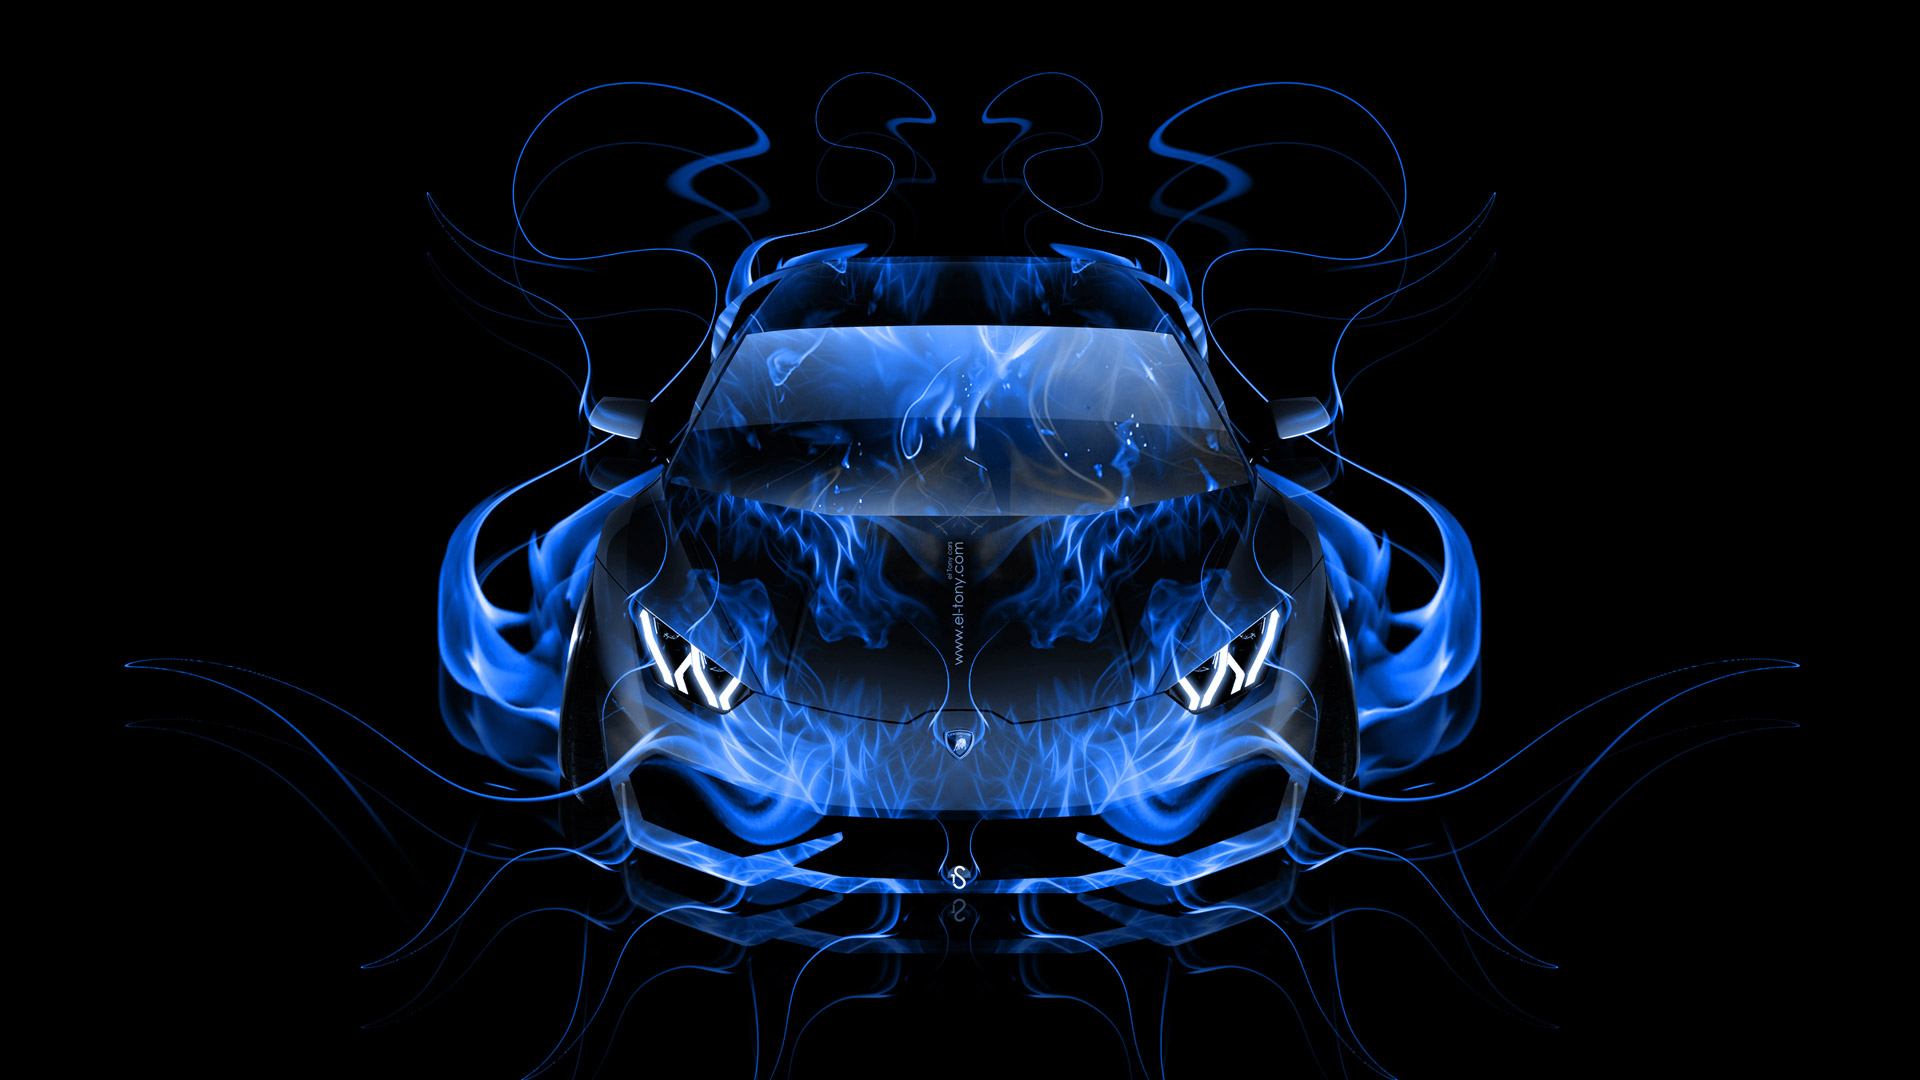 blue neon hd by mandeep